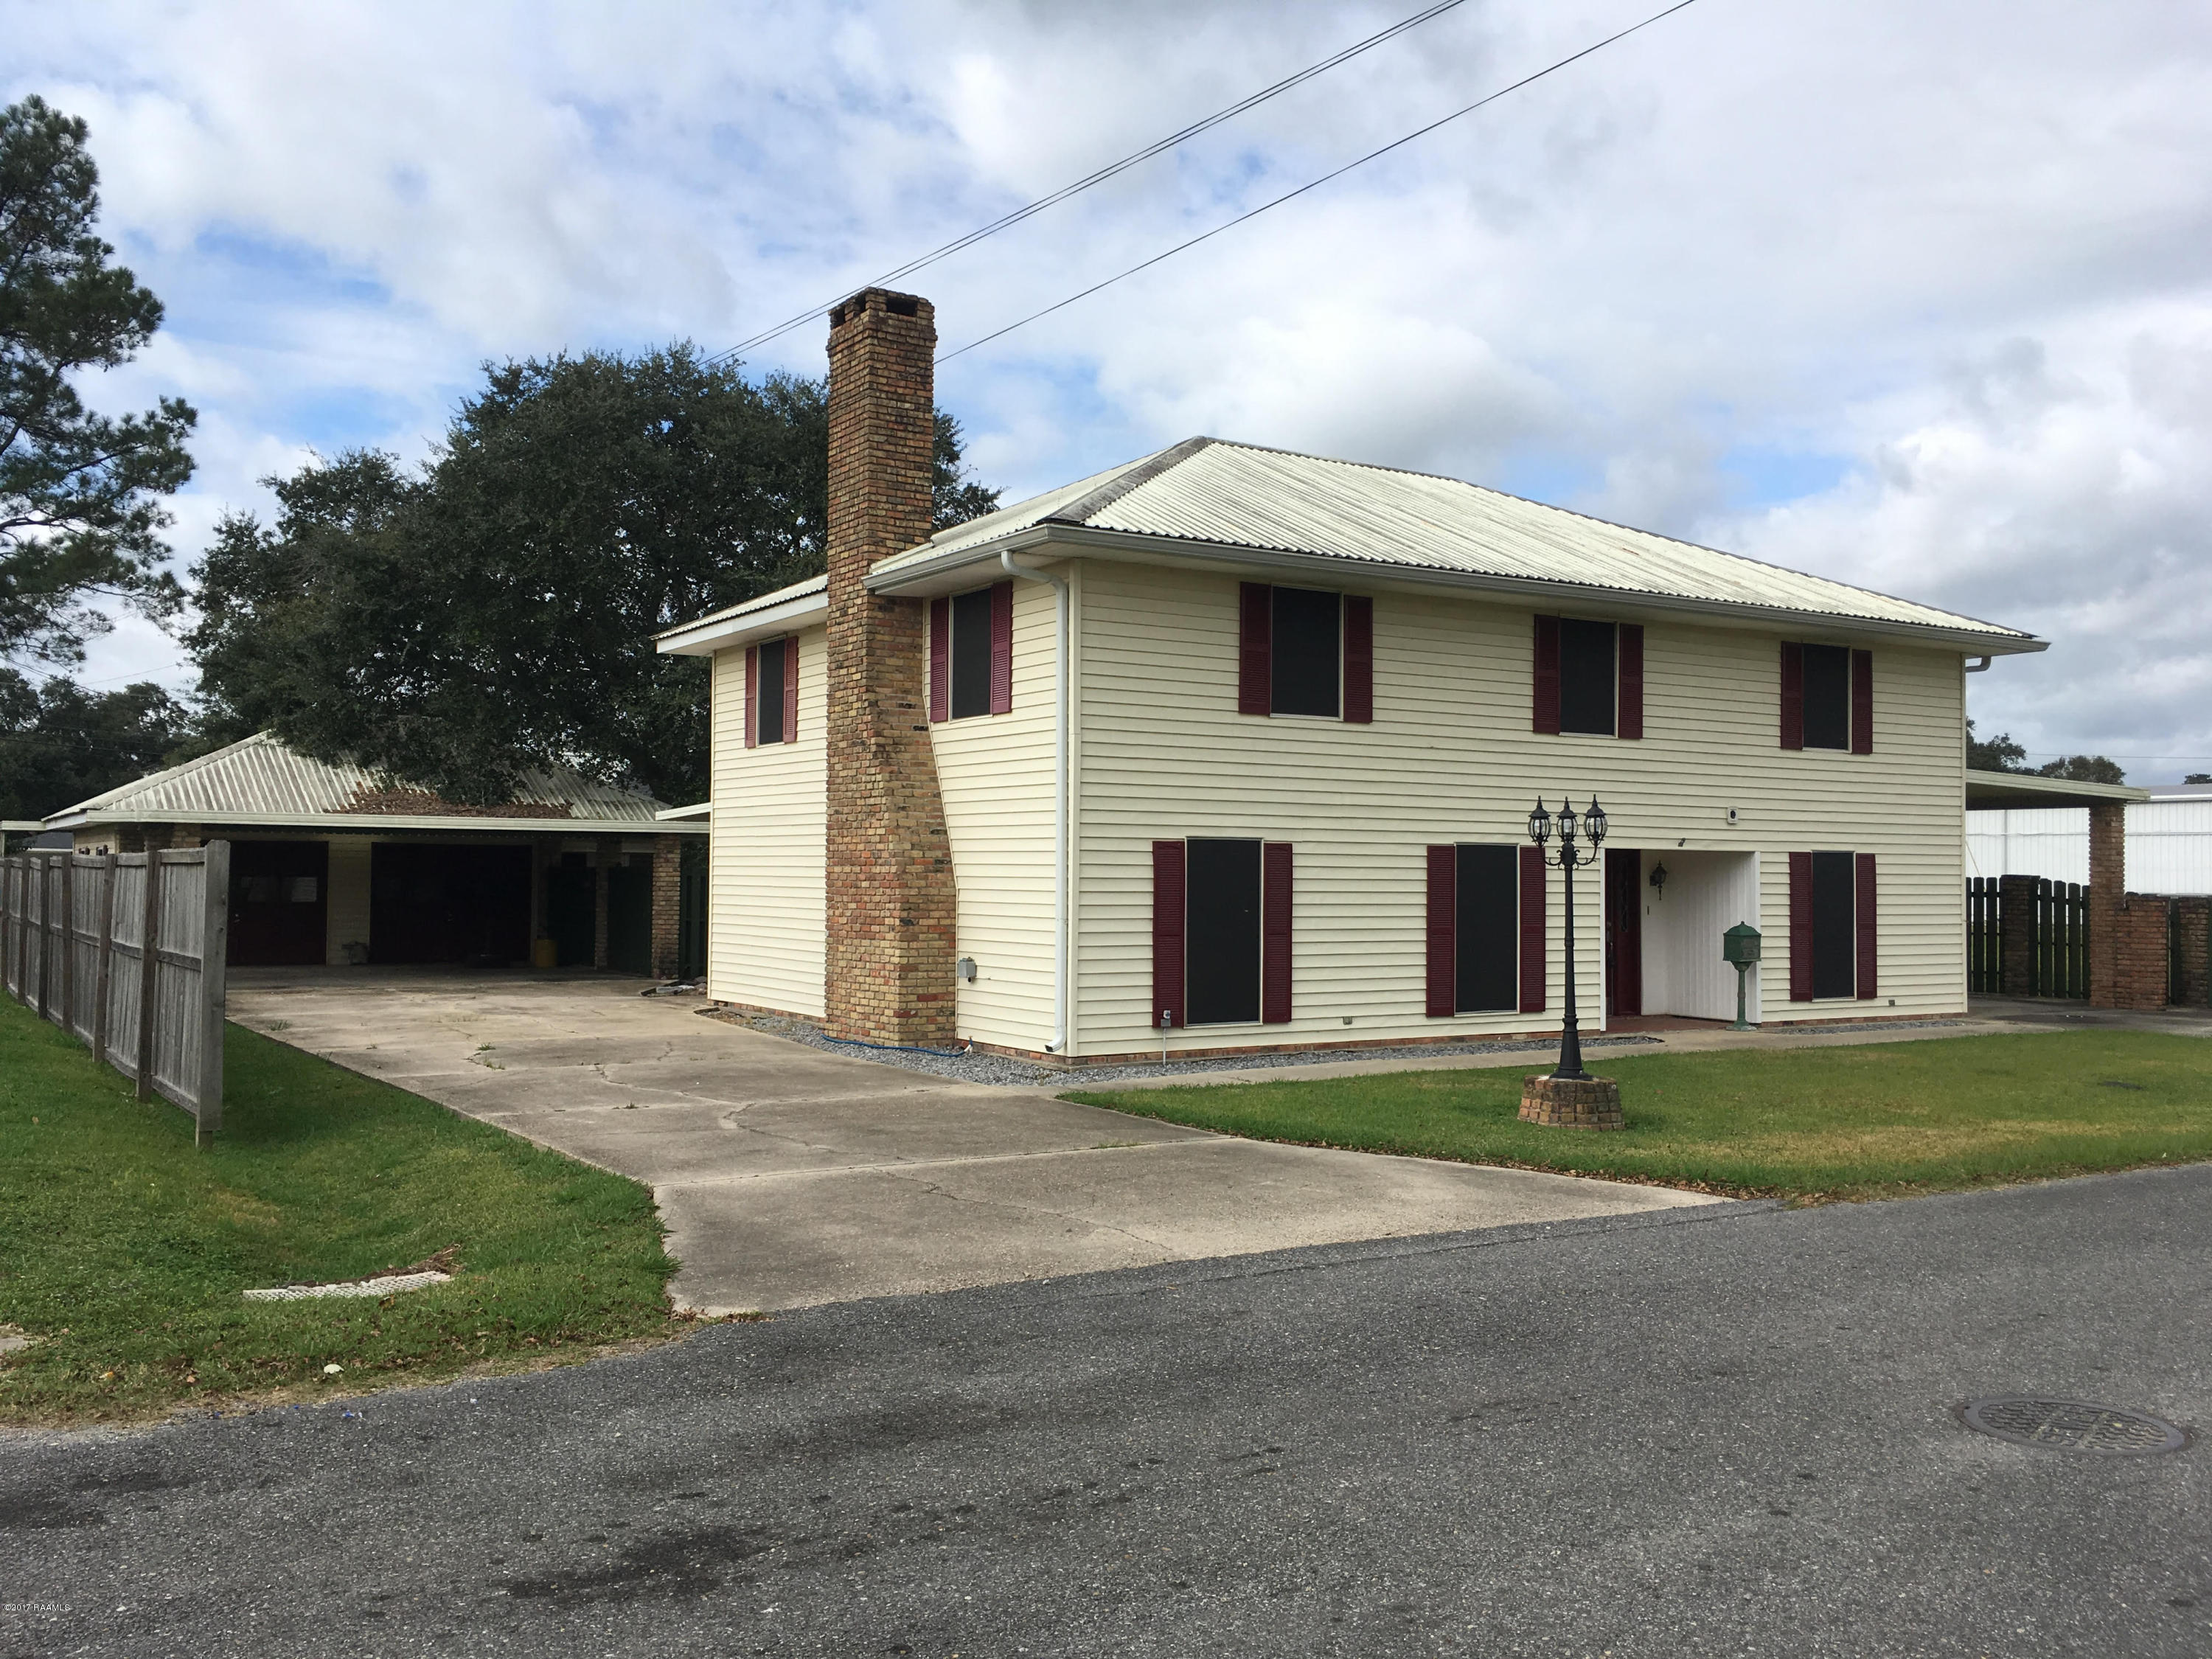 710 Edward Street, Breaux Bridge, LA 70517 Photo #1